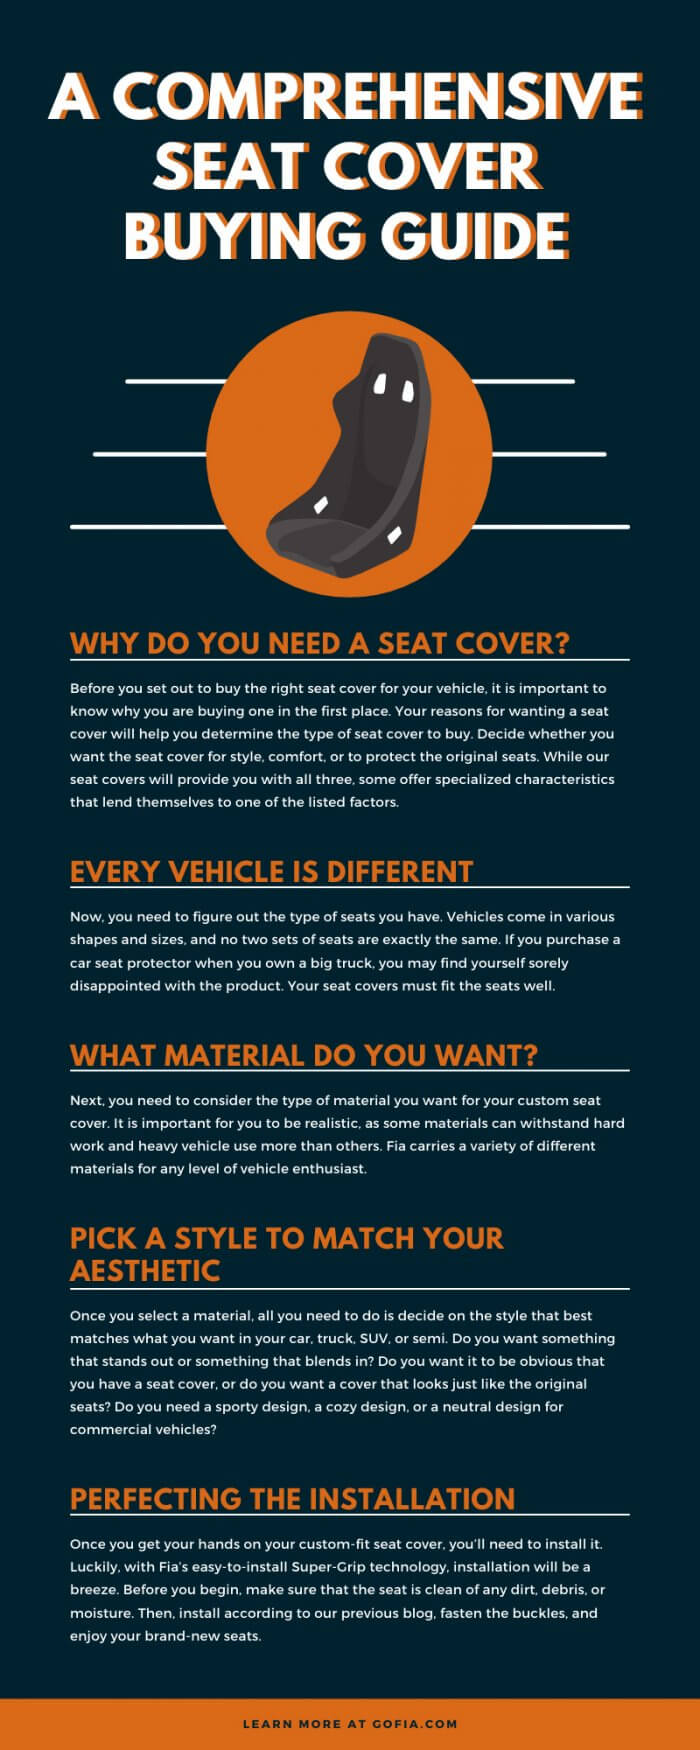 Seat Cover Buying Guide